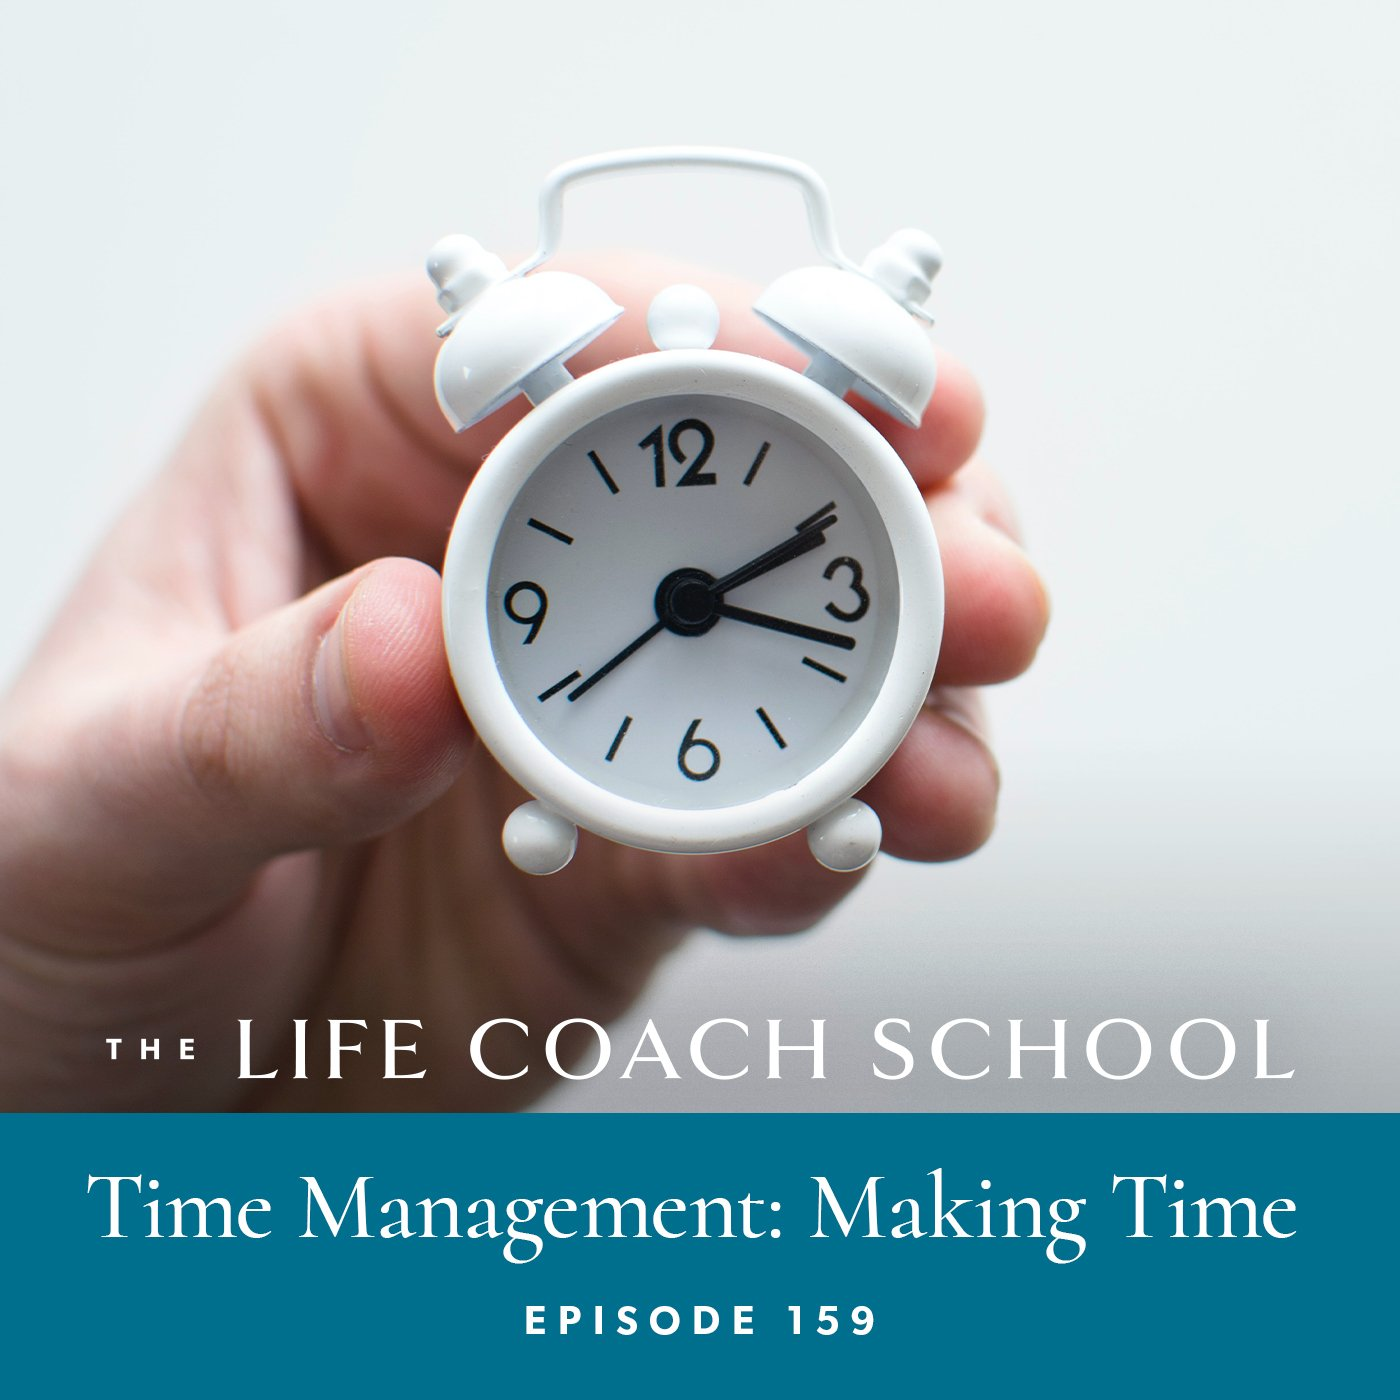 The Life Coach School Podcast with Brooke Castillo | Episode 159 | Time Management: Making Time